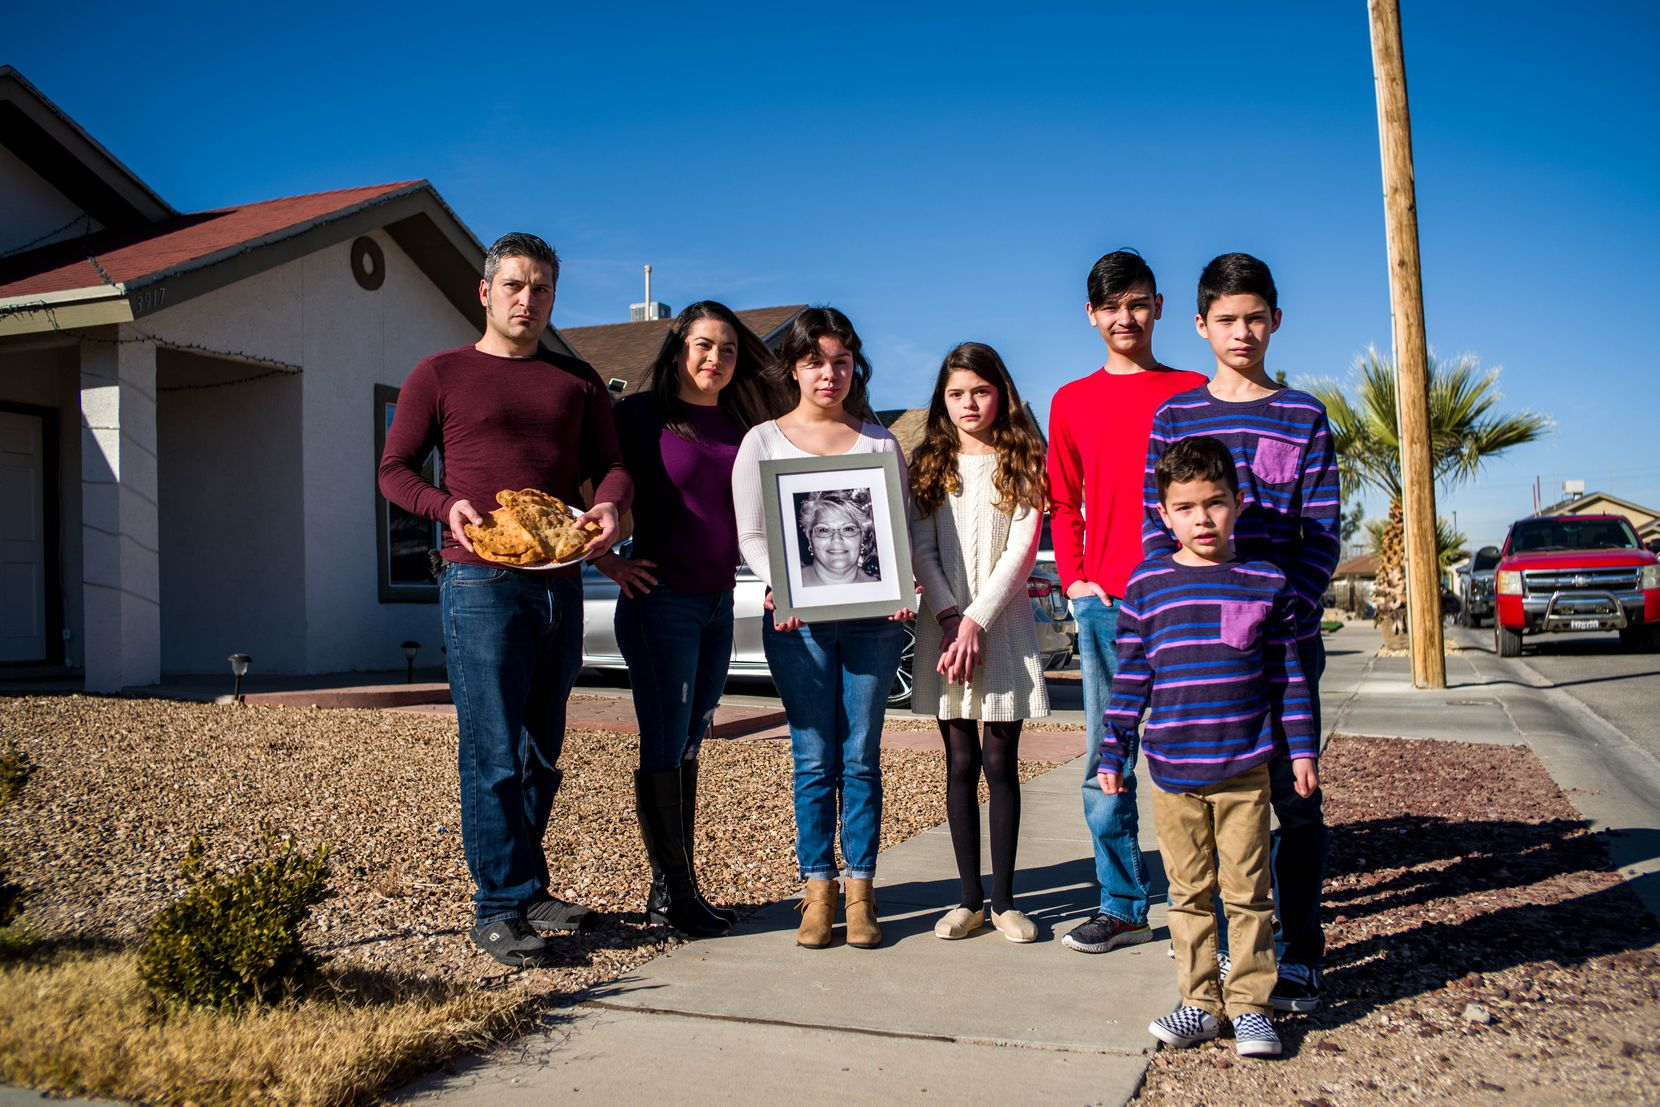 Armando Martínez, left, 35, his wife Muriel Martínez, 33, niece Jasmine Martínez, 19, daughter Maya Martínez, 12, nephew Diego Martínez, 13, son Christopher Martínez, 13, and son Sebastian Martínez, 5, pose for a portrait outside their home as they gather around a photograph of Maria Oralia Lugo, 56, in El Paso, Texas, on Thursday, December, 17, 2020. Maria Oralia Lugo and two other relatives died of COVID-19 in November.